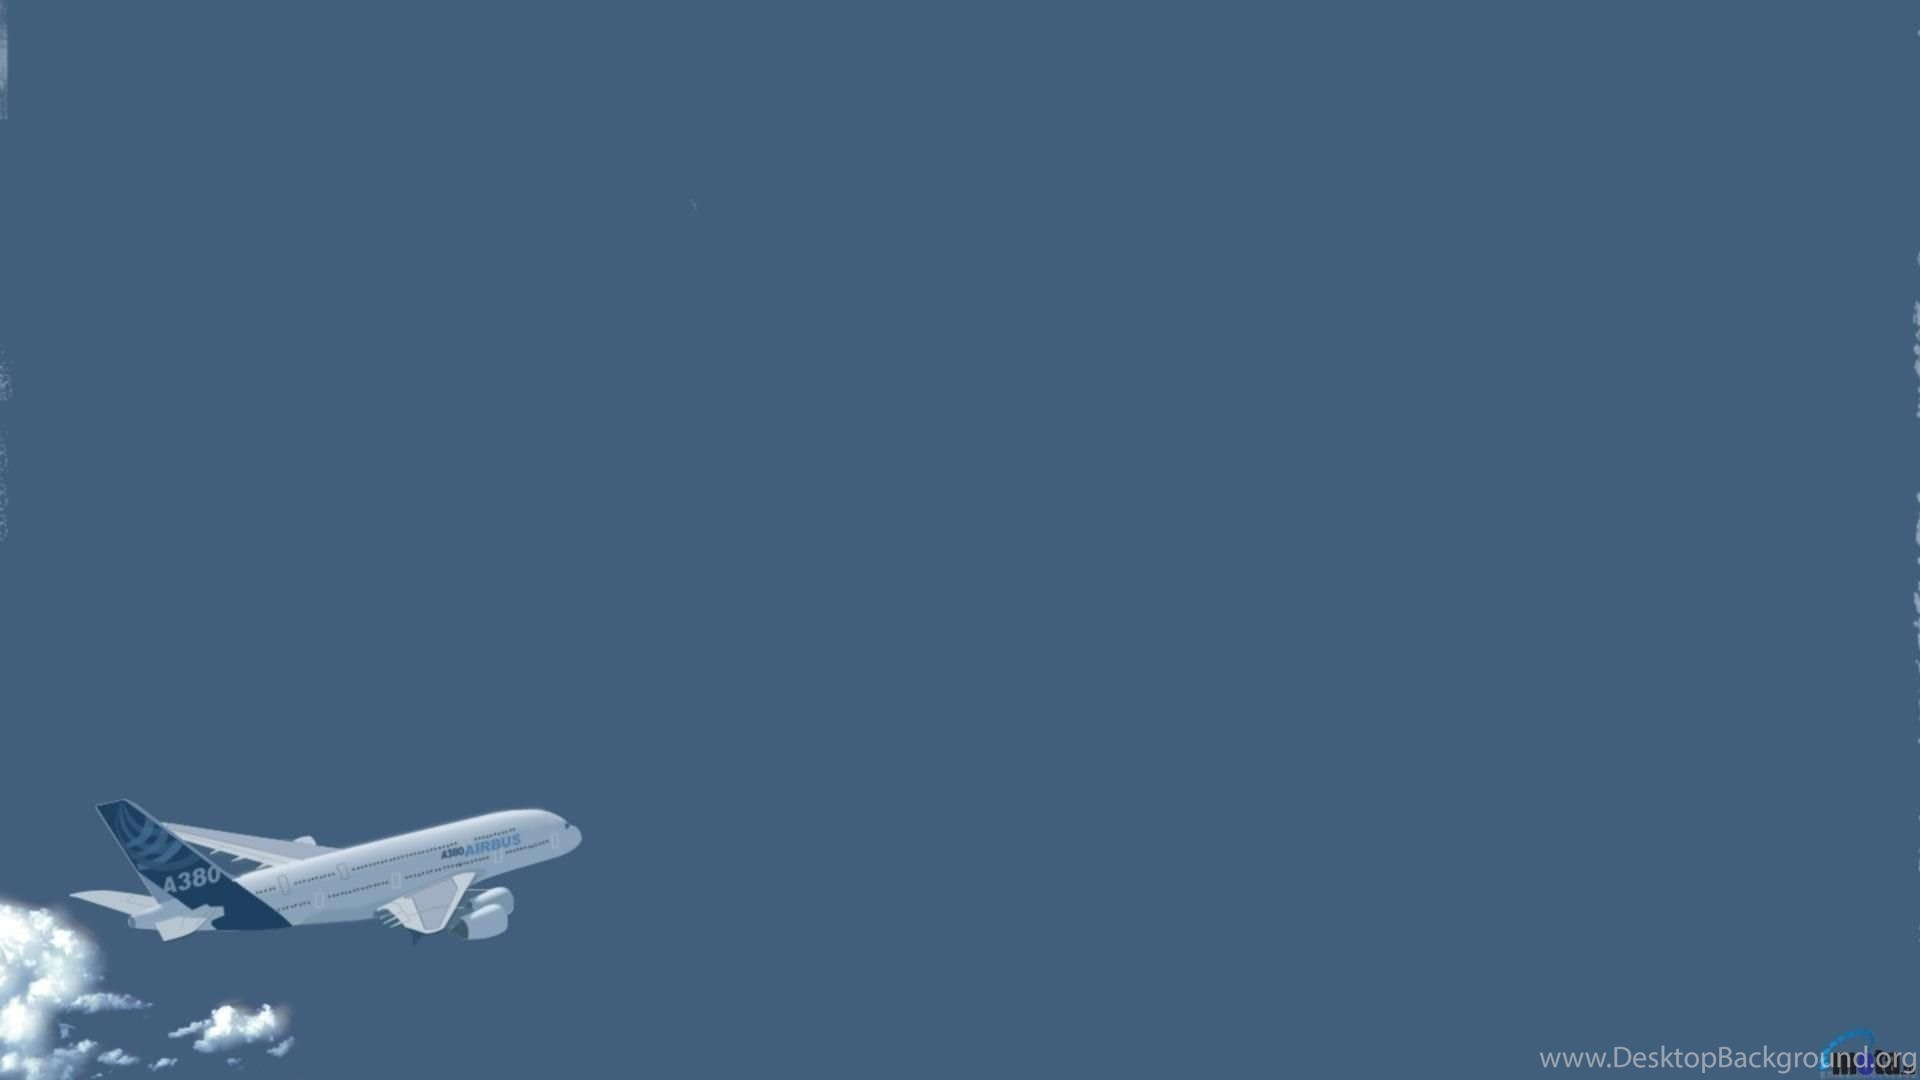 Download Wallpapers Airbus A380 Simple Wall 1920 X 1080 Hdtv 1080p Desktop Background